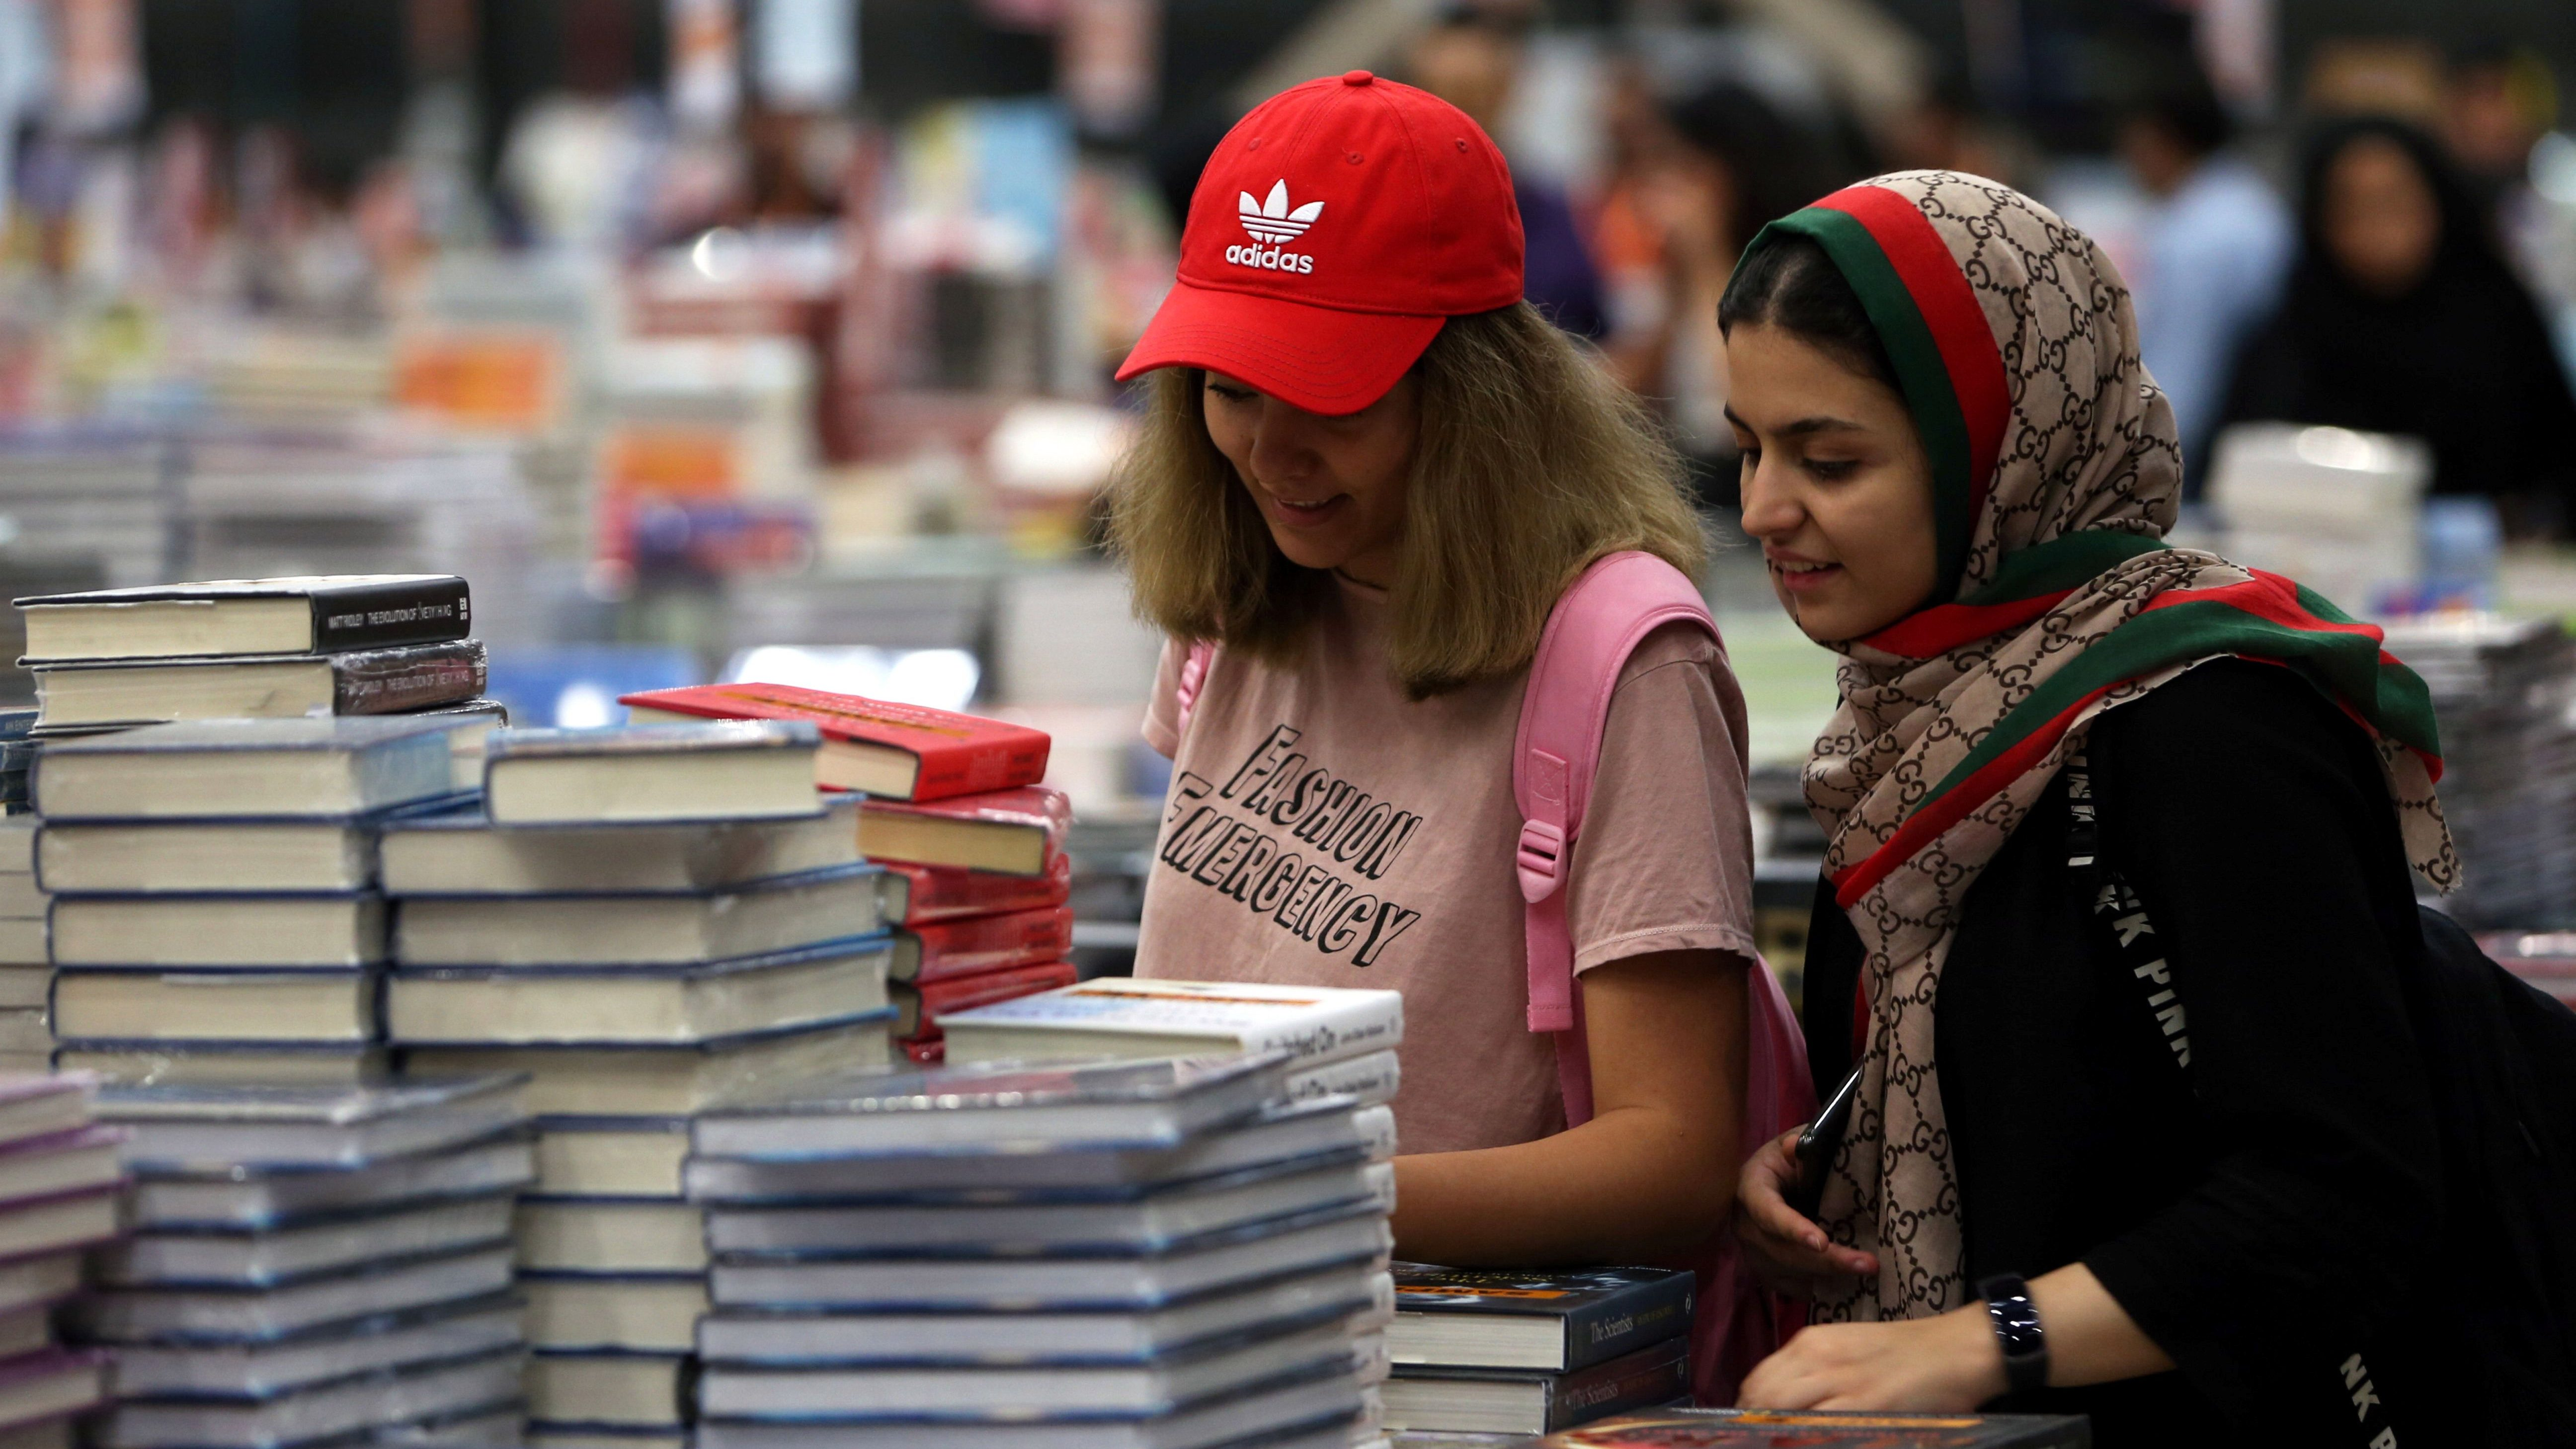 Visitors read books at the Big Bad Wolf Book Sale, which calls itself the world's biggest, hosted for the first time by Dubai